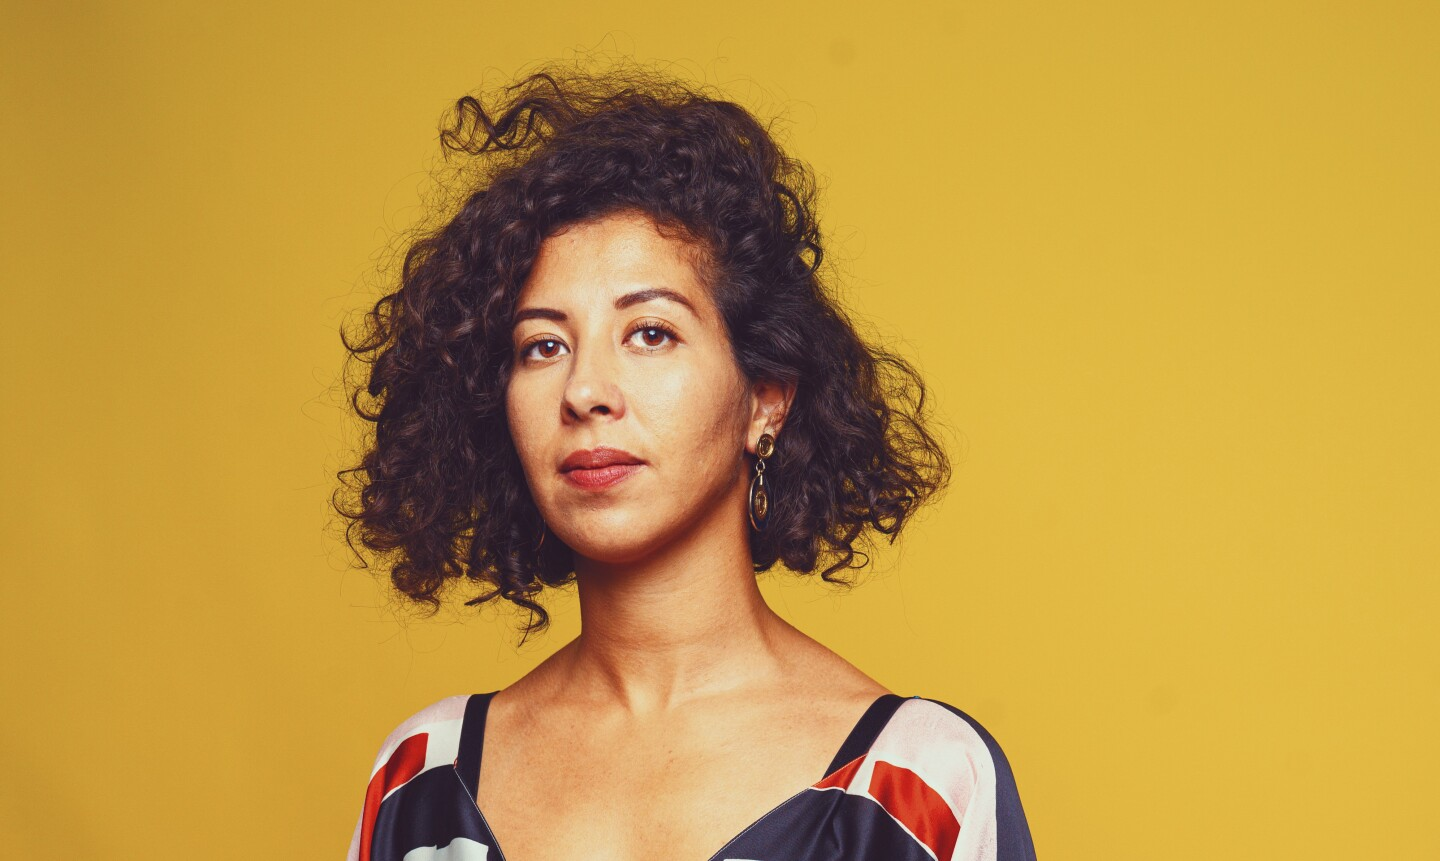 Filmmaker Assia Boundaoui stands in front of a yellow backdrop.